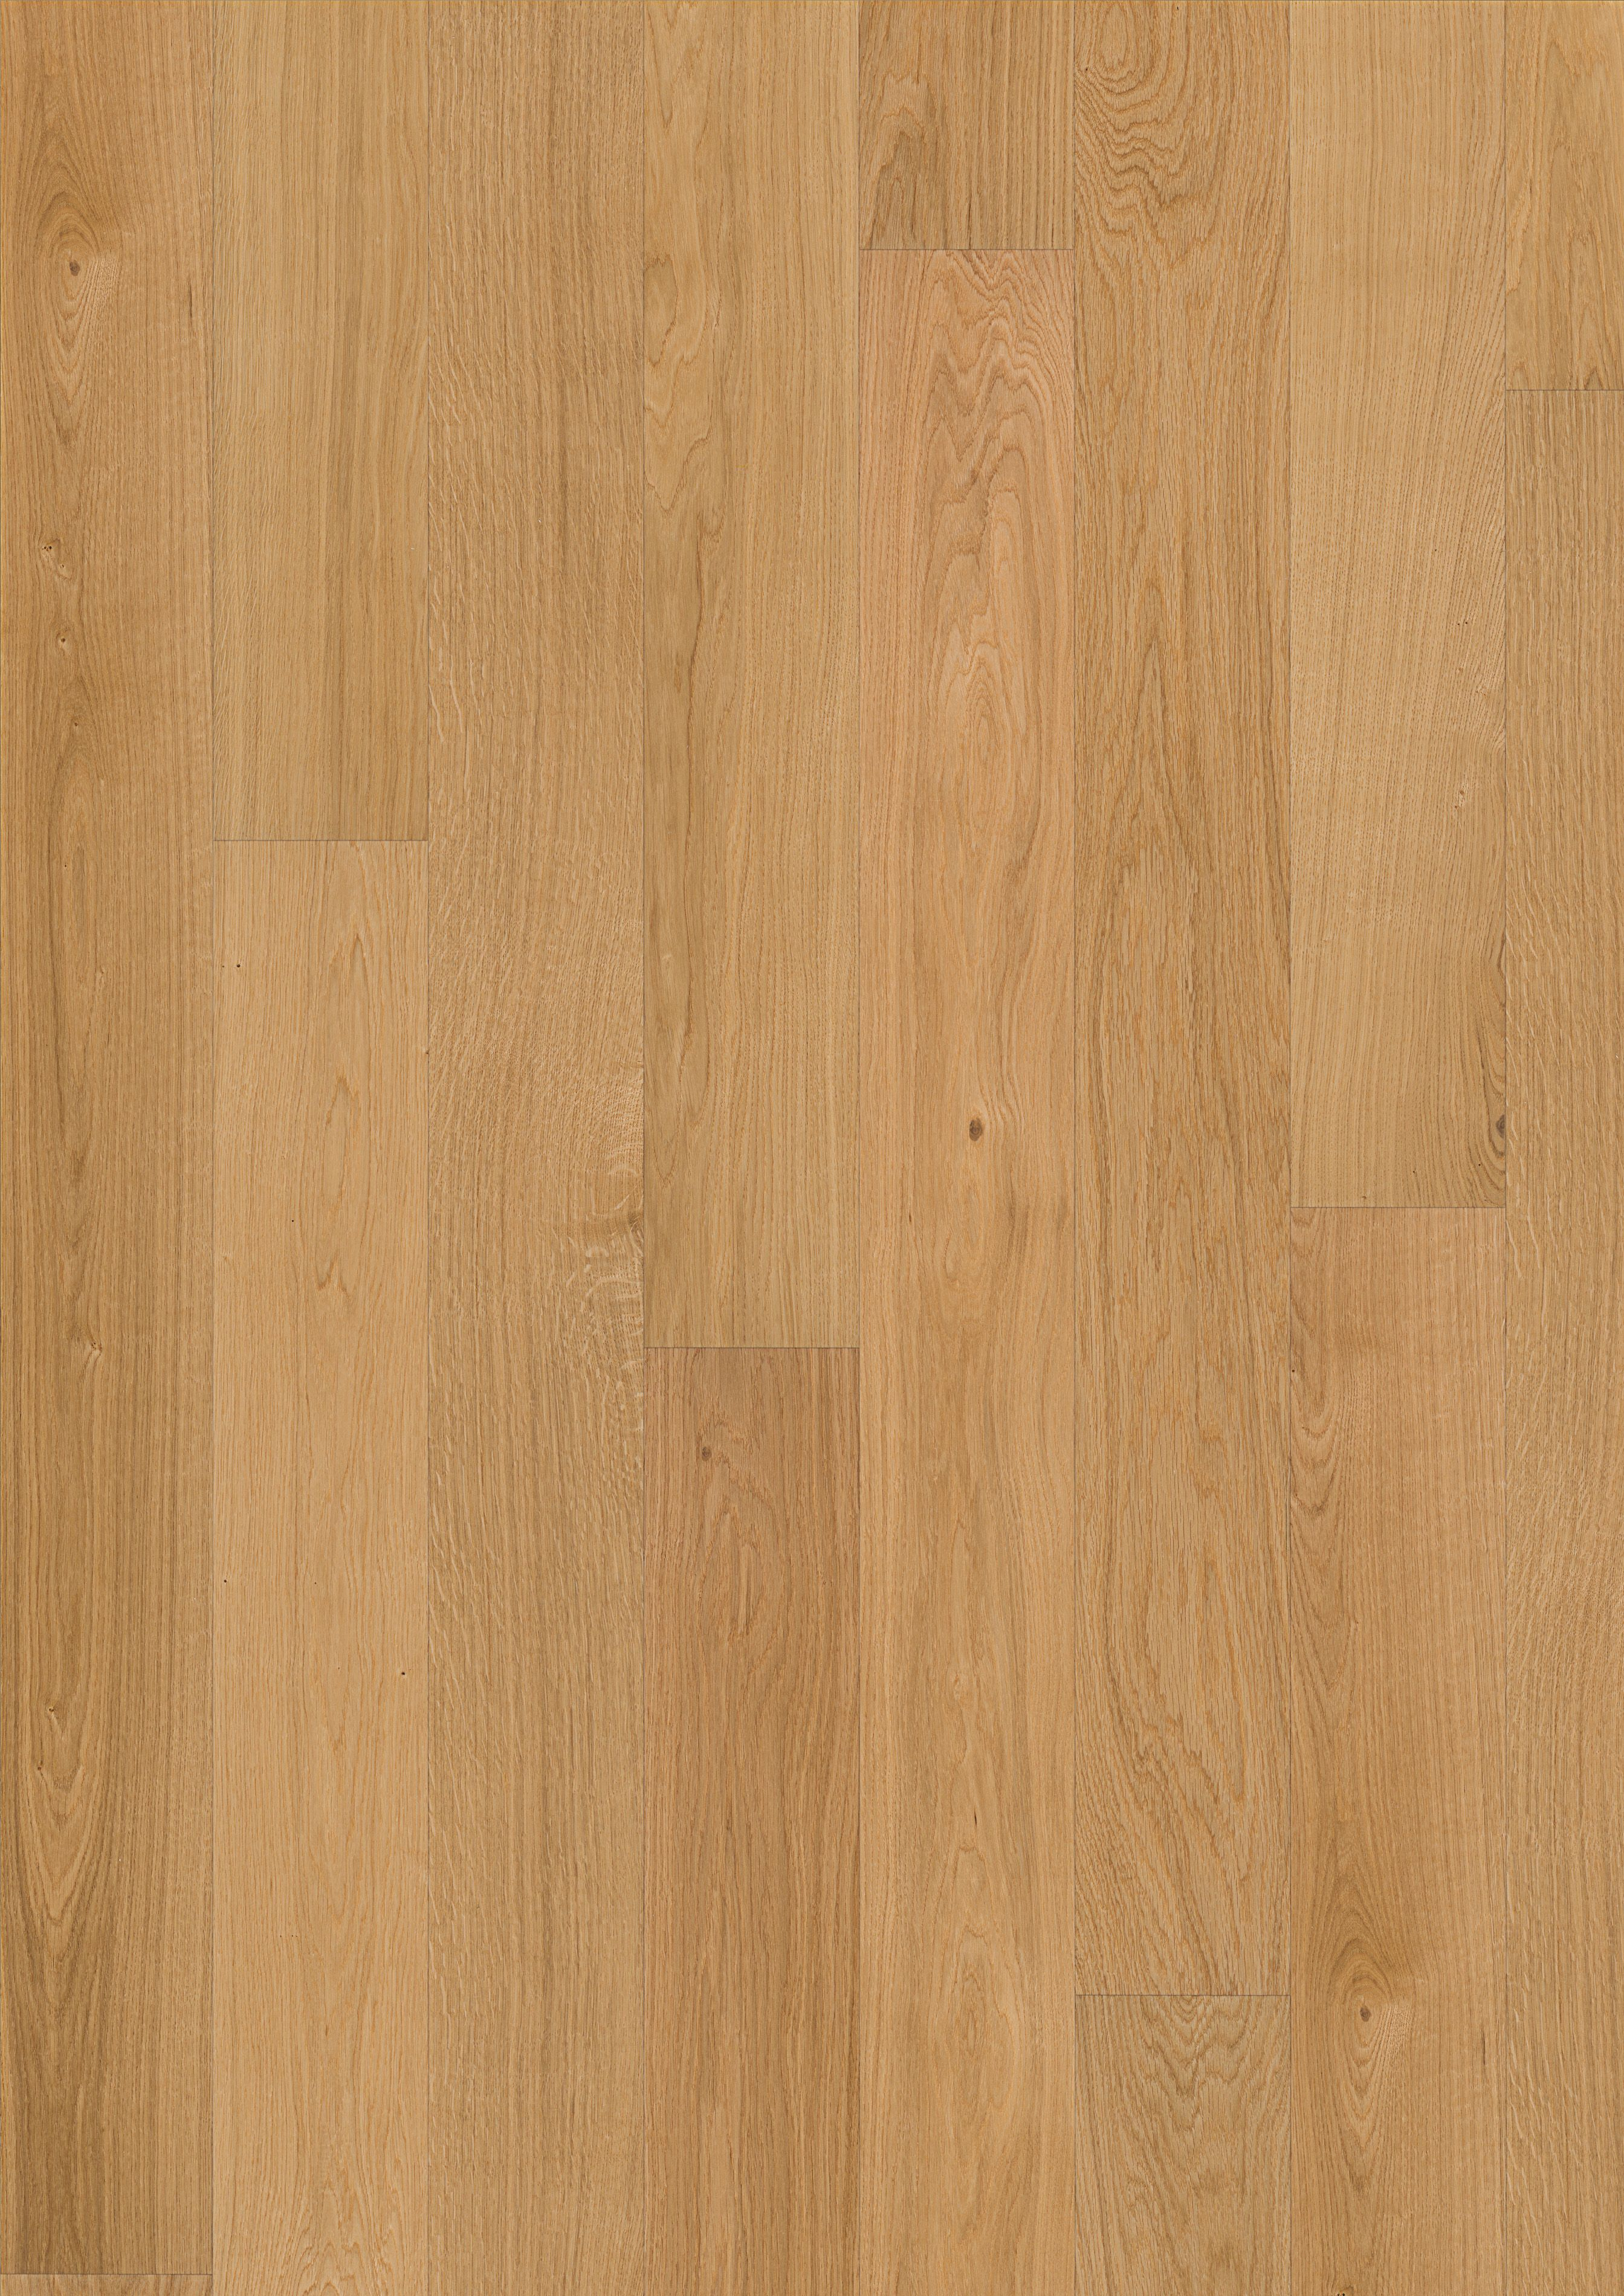 K 228 Hrs Wood Flooring Parquet Interior Design Www